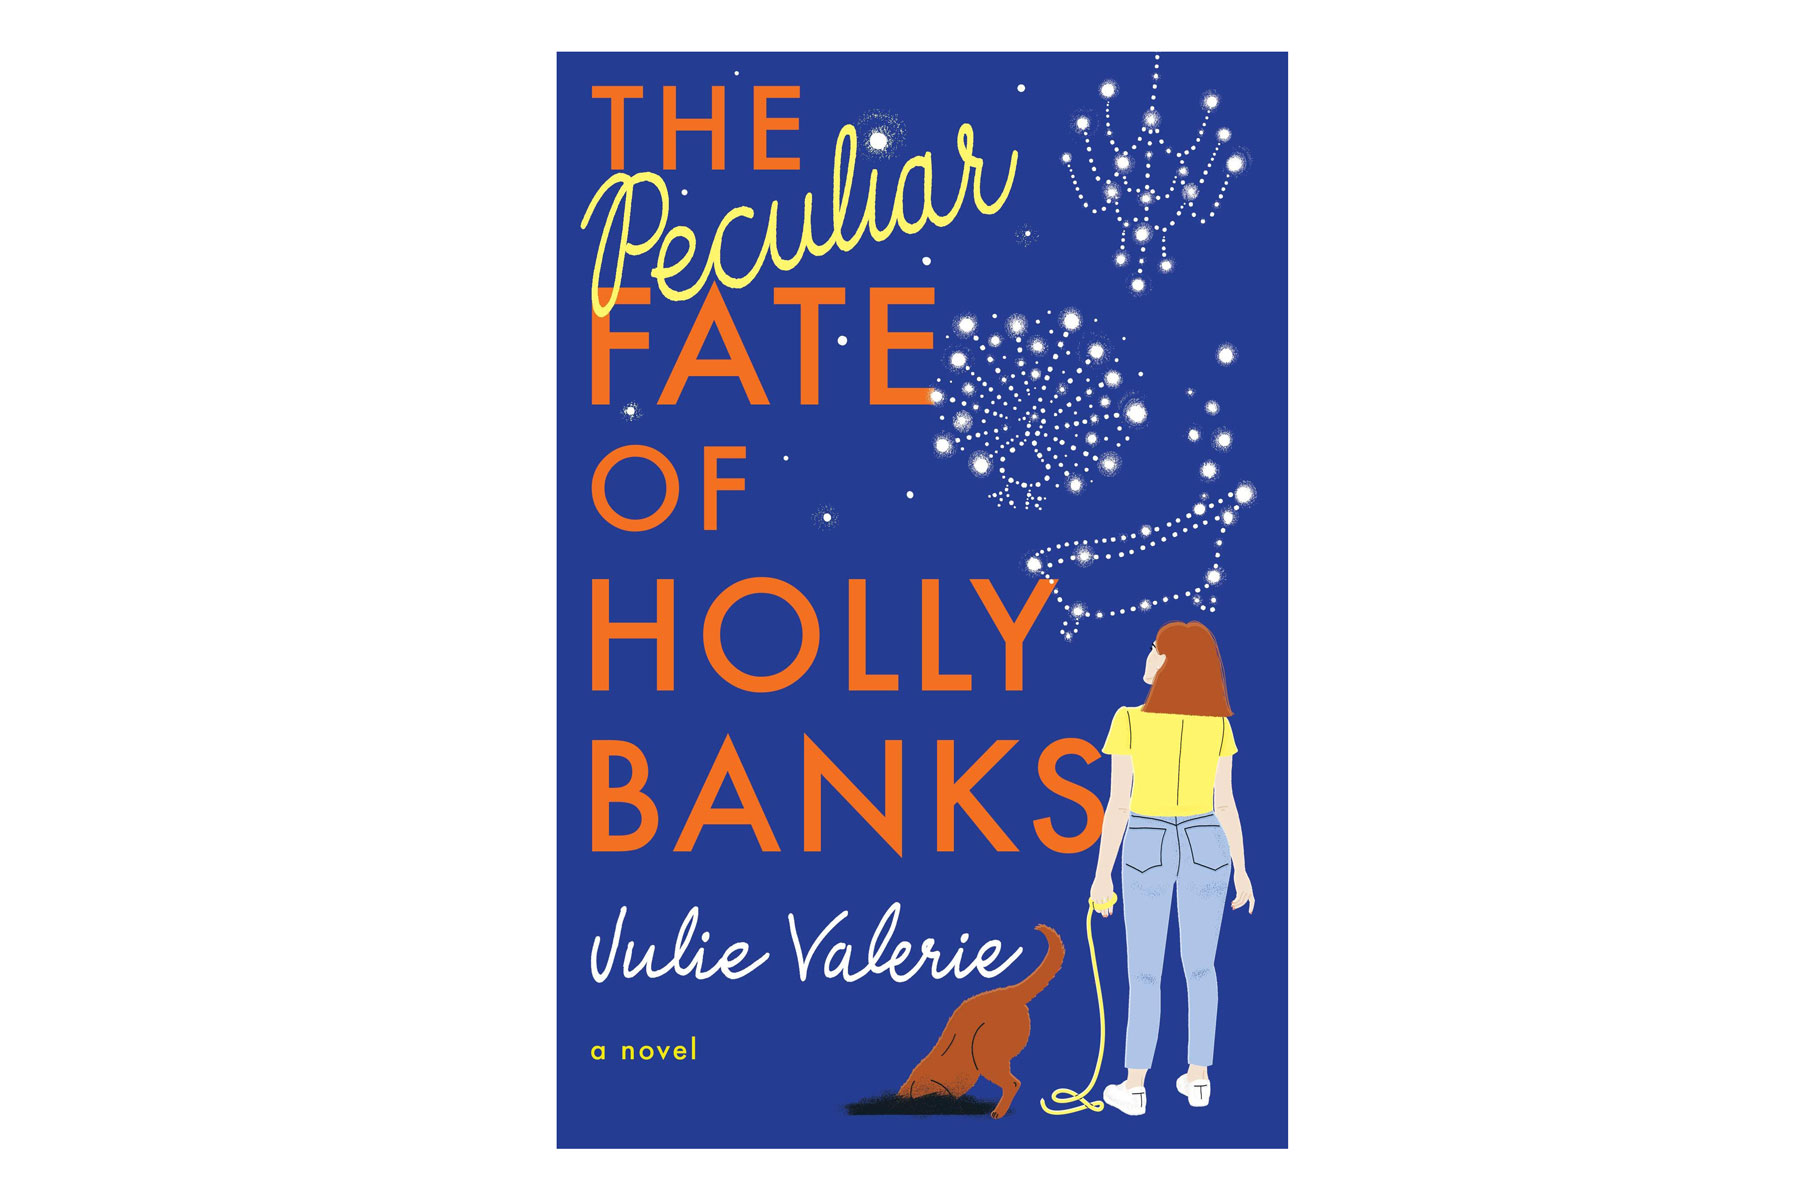 The Peculiar Fate of Holly Banks book